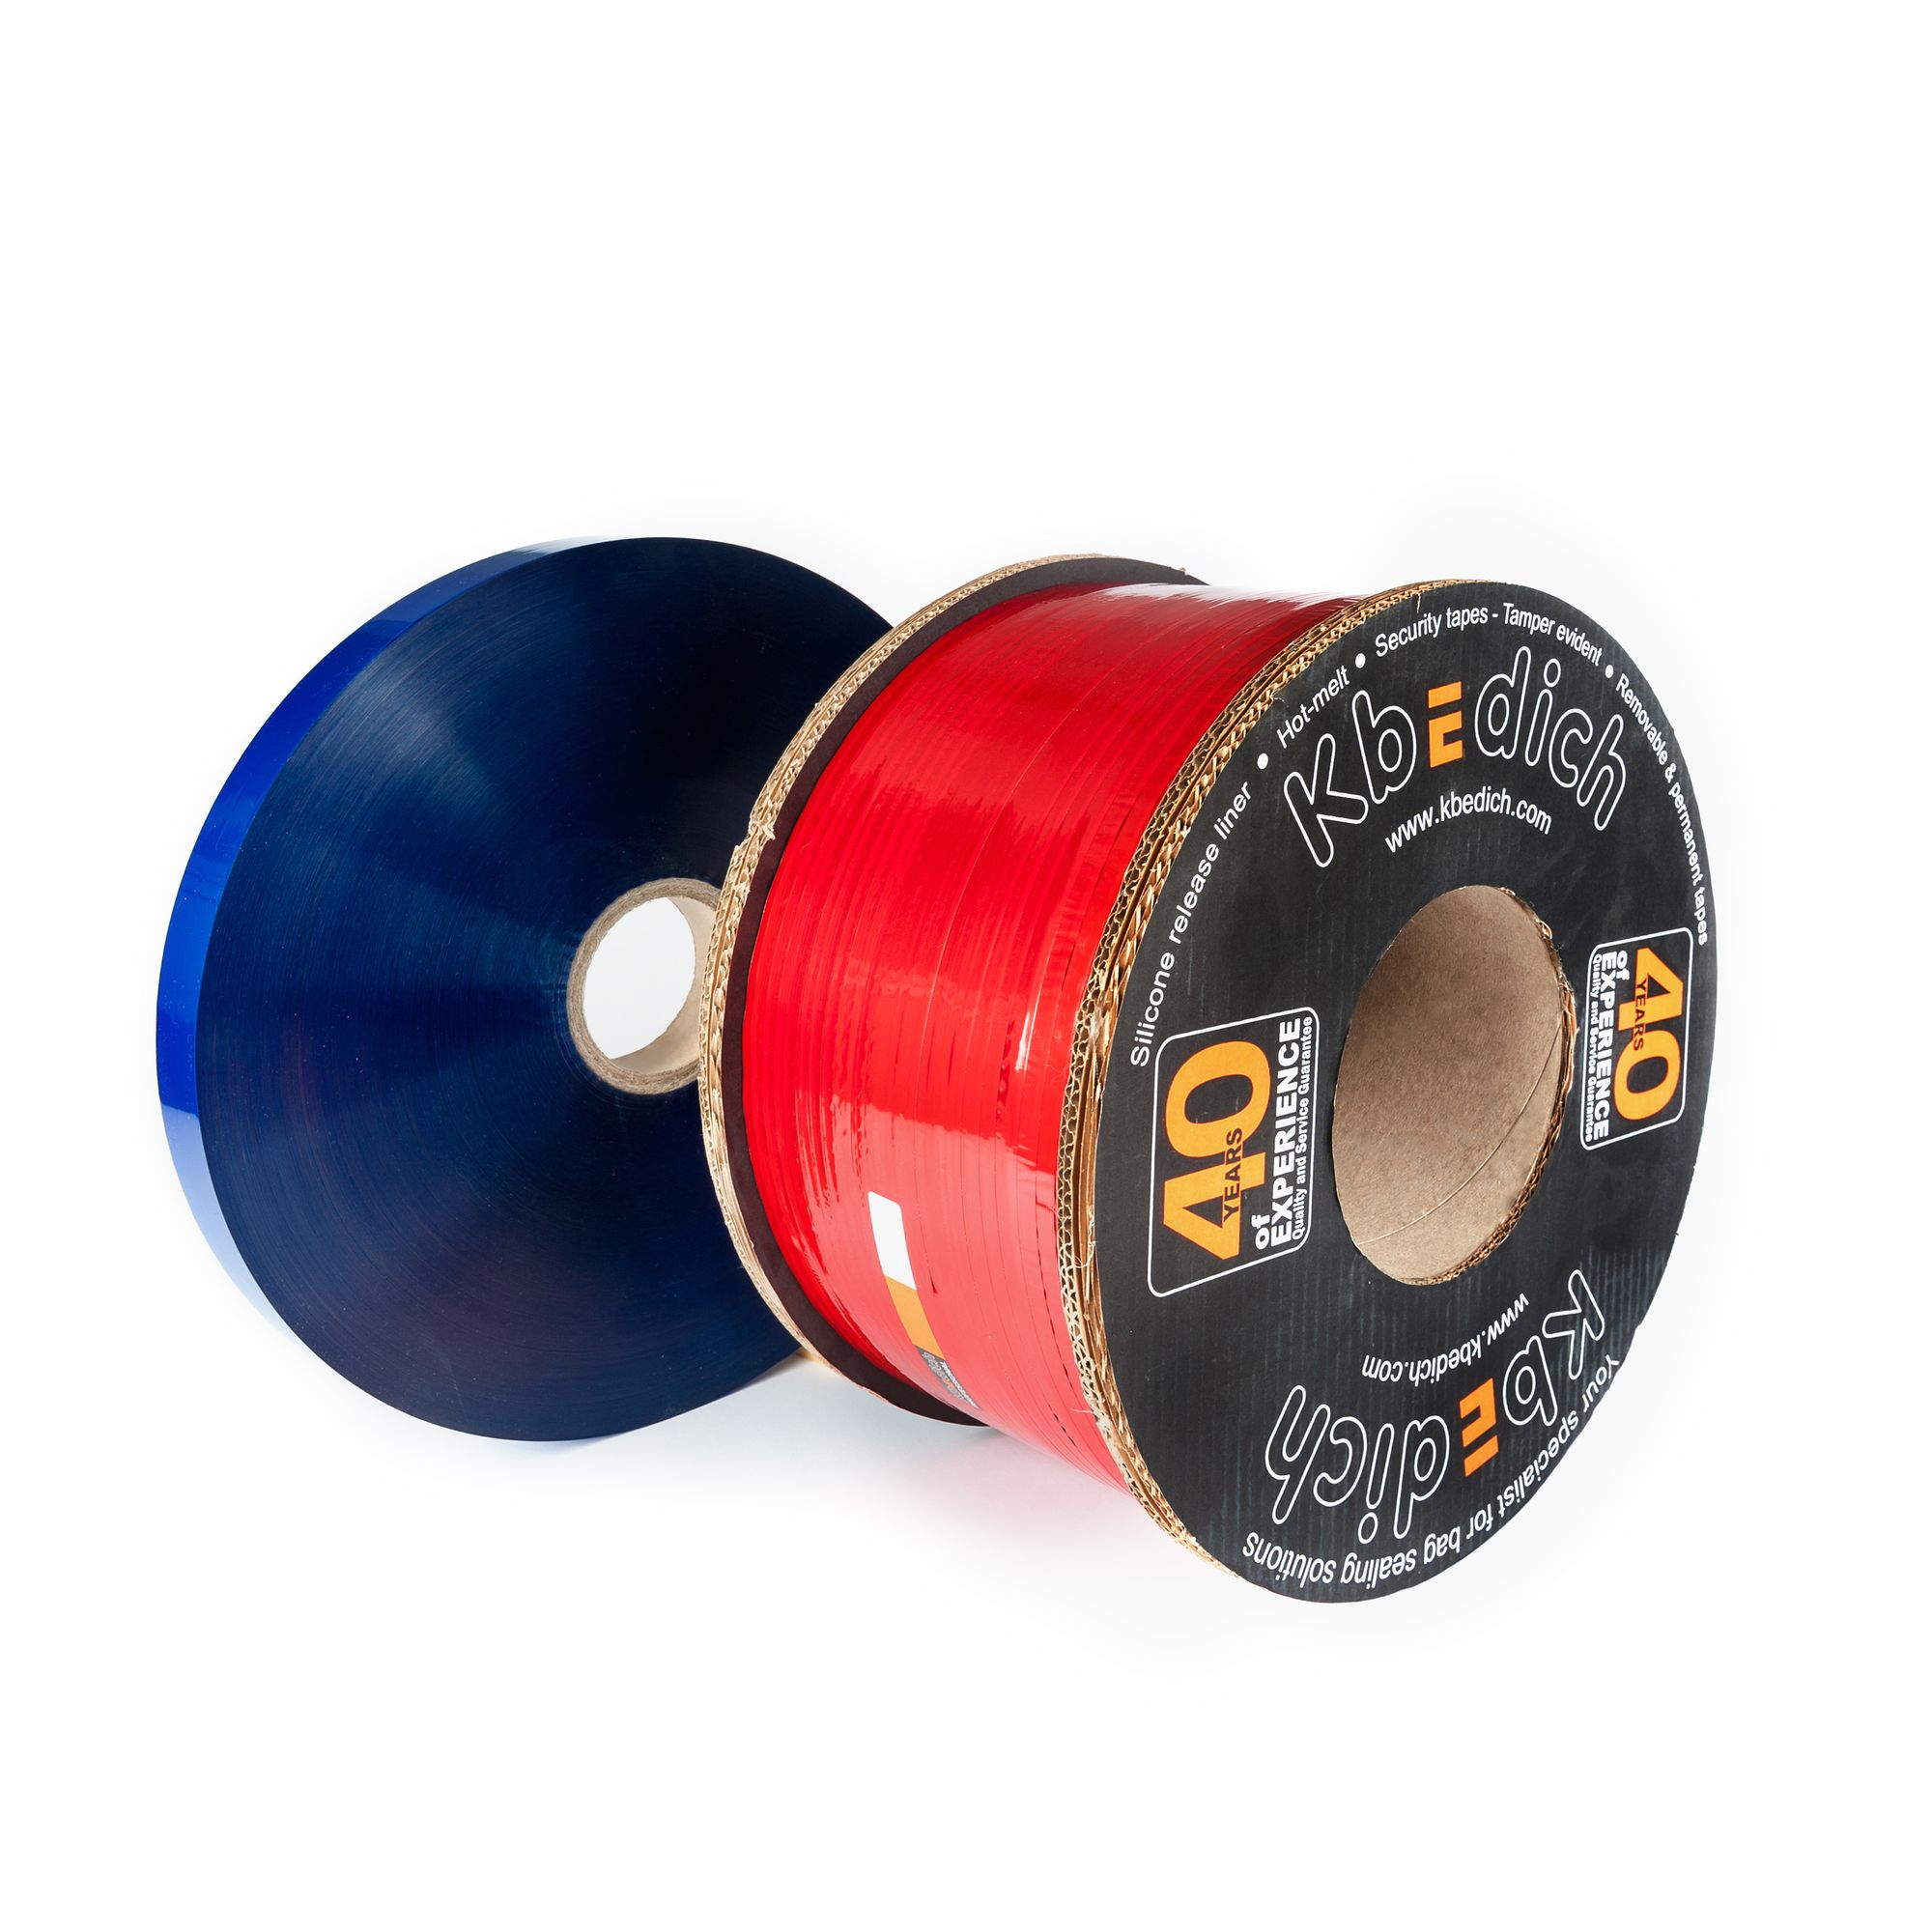 Security tapes - Tamper evident - Certified by Applus - Permanent tape closures - Permanent tape closures - Hotmelt adhesive - Hotmelt adhesive - The security tape company - Reseleable tape Closures - Film transfer - Silicone release liner - http://www.kbedich.com - Cintas de cierre no permanente - Tamper Evident - Adhesivo hotmelt - protectores siliconados - Cintas de seguridad - Film transfers - Cintas de cierre no permanente - Adhesivo hotmelt - http://www.kbedich.com